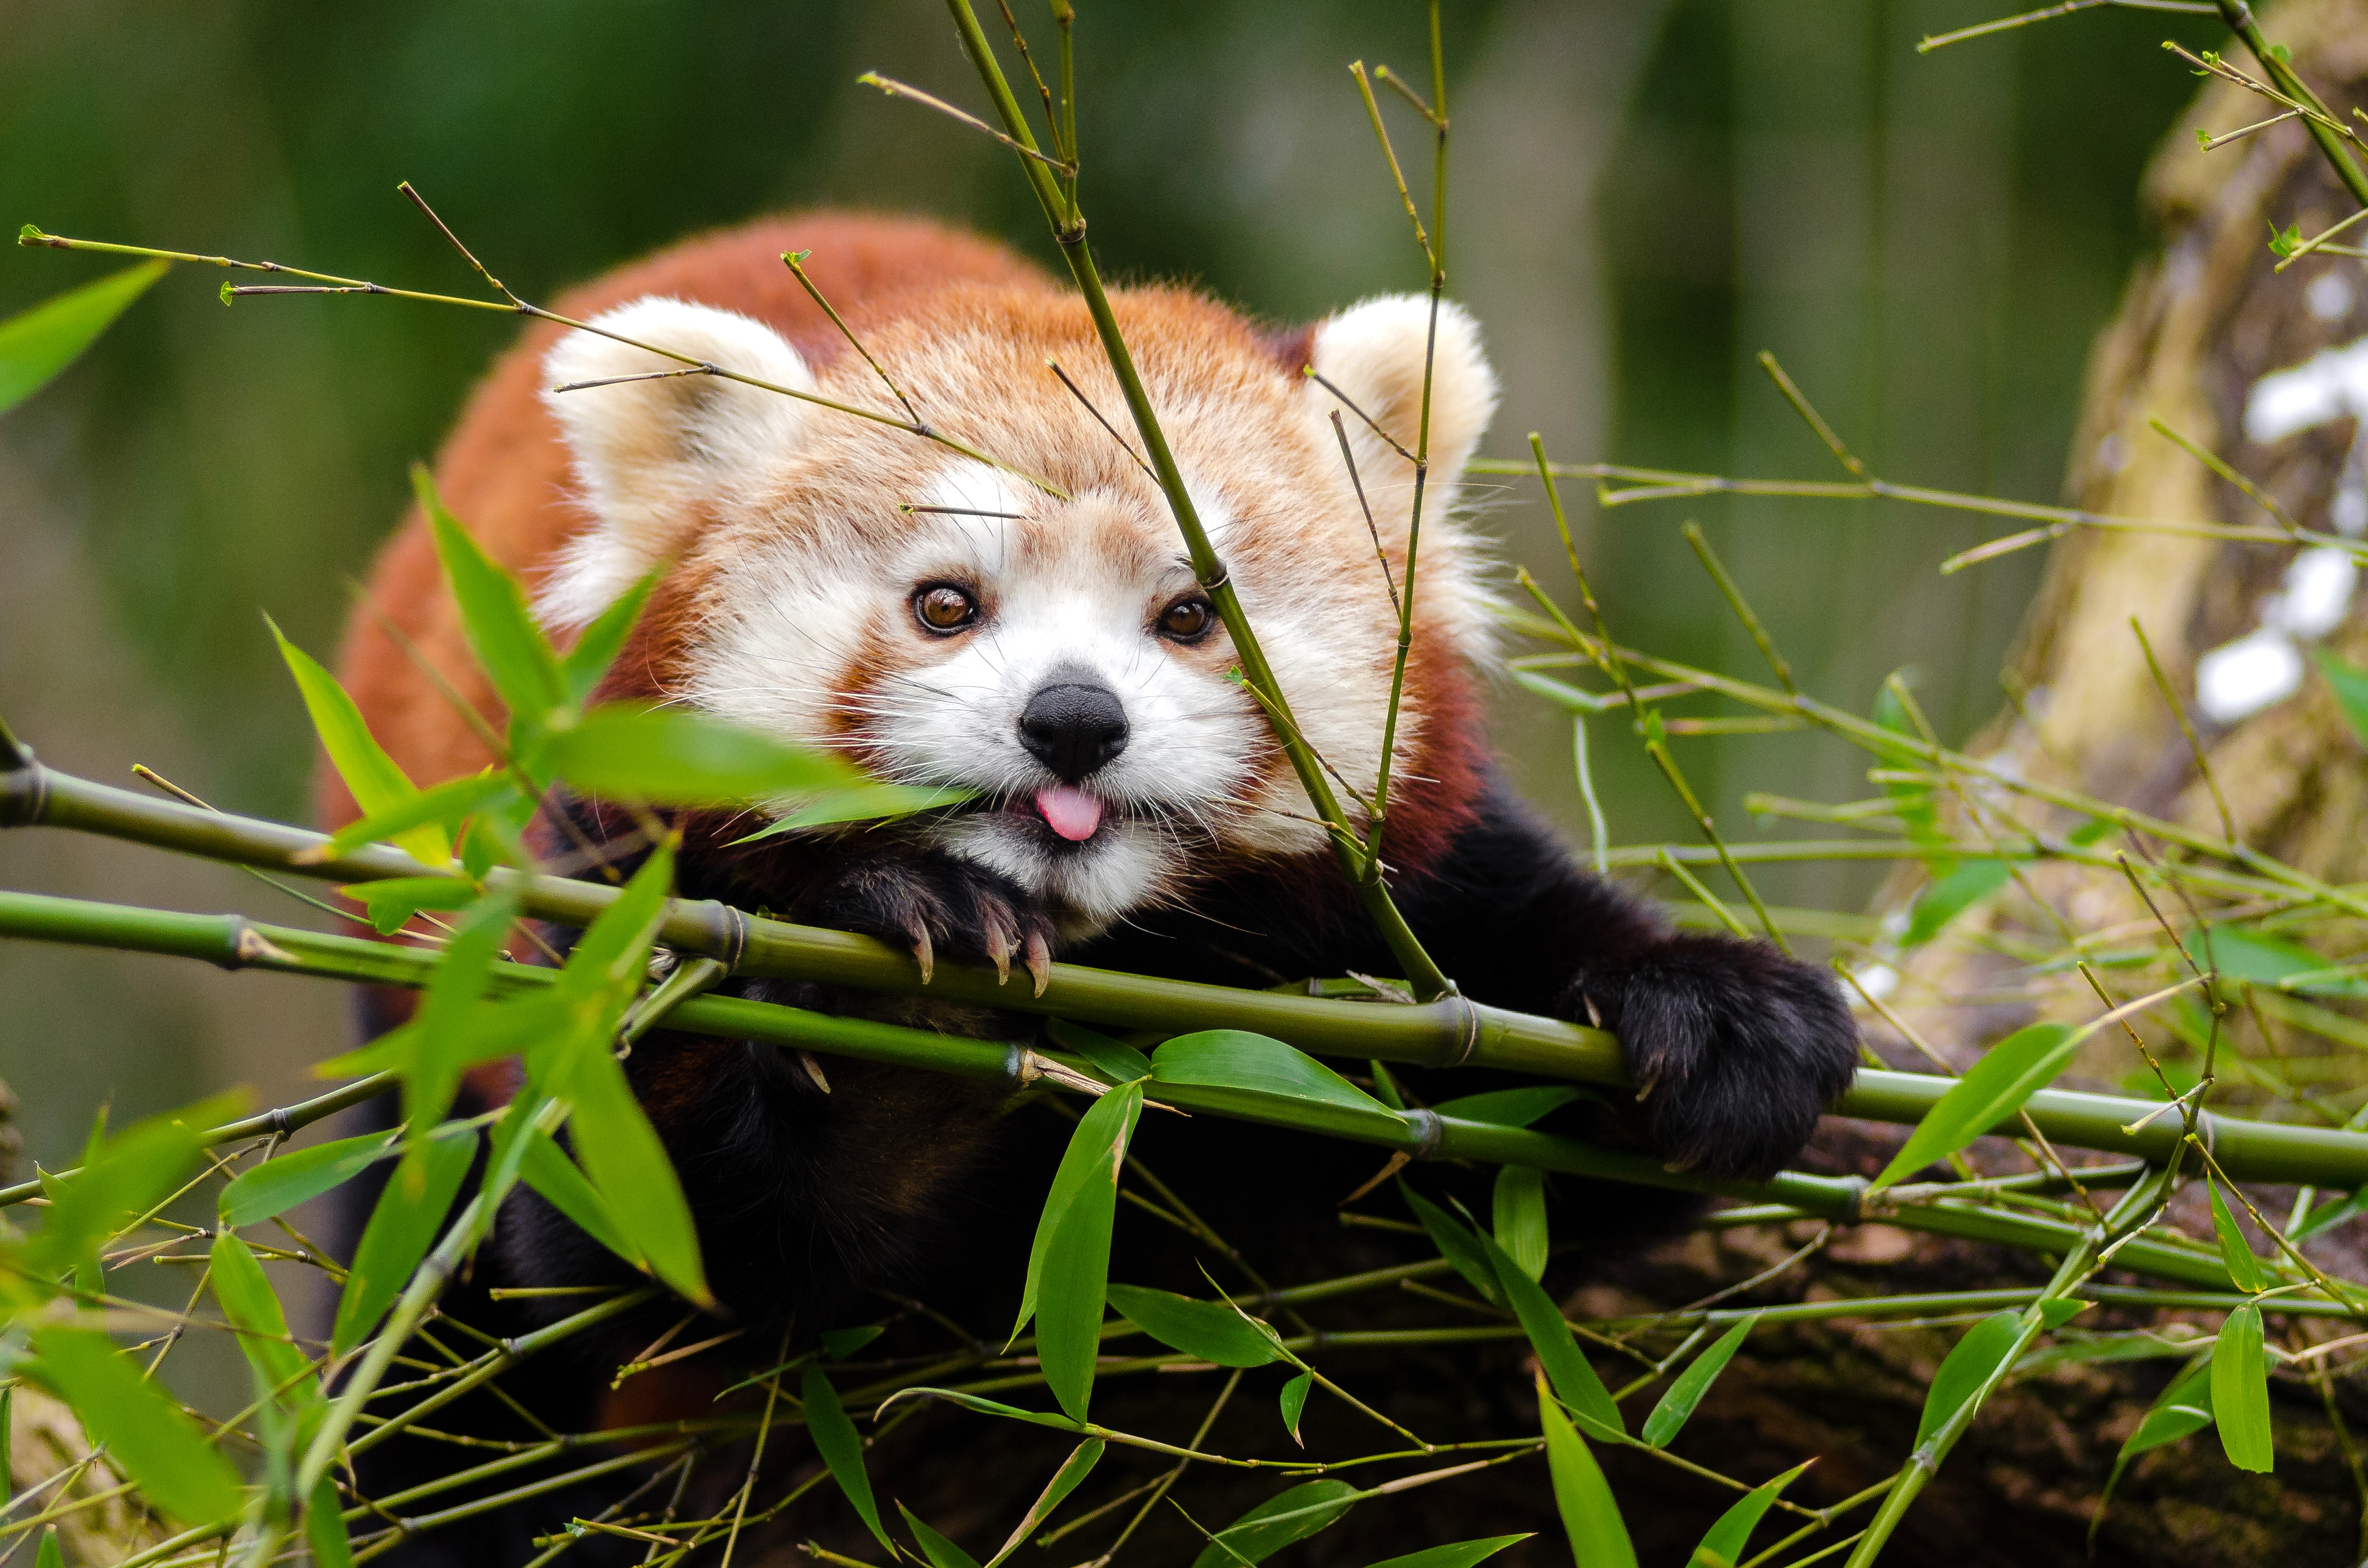 87680 download wallpaper Animals, Fiery Panda, Red Panda, Protruding Tongue, Tongue Stuck Out, Cool screensavers and pictures for free